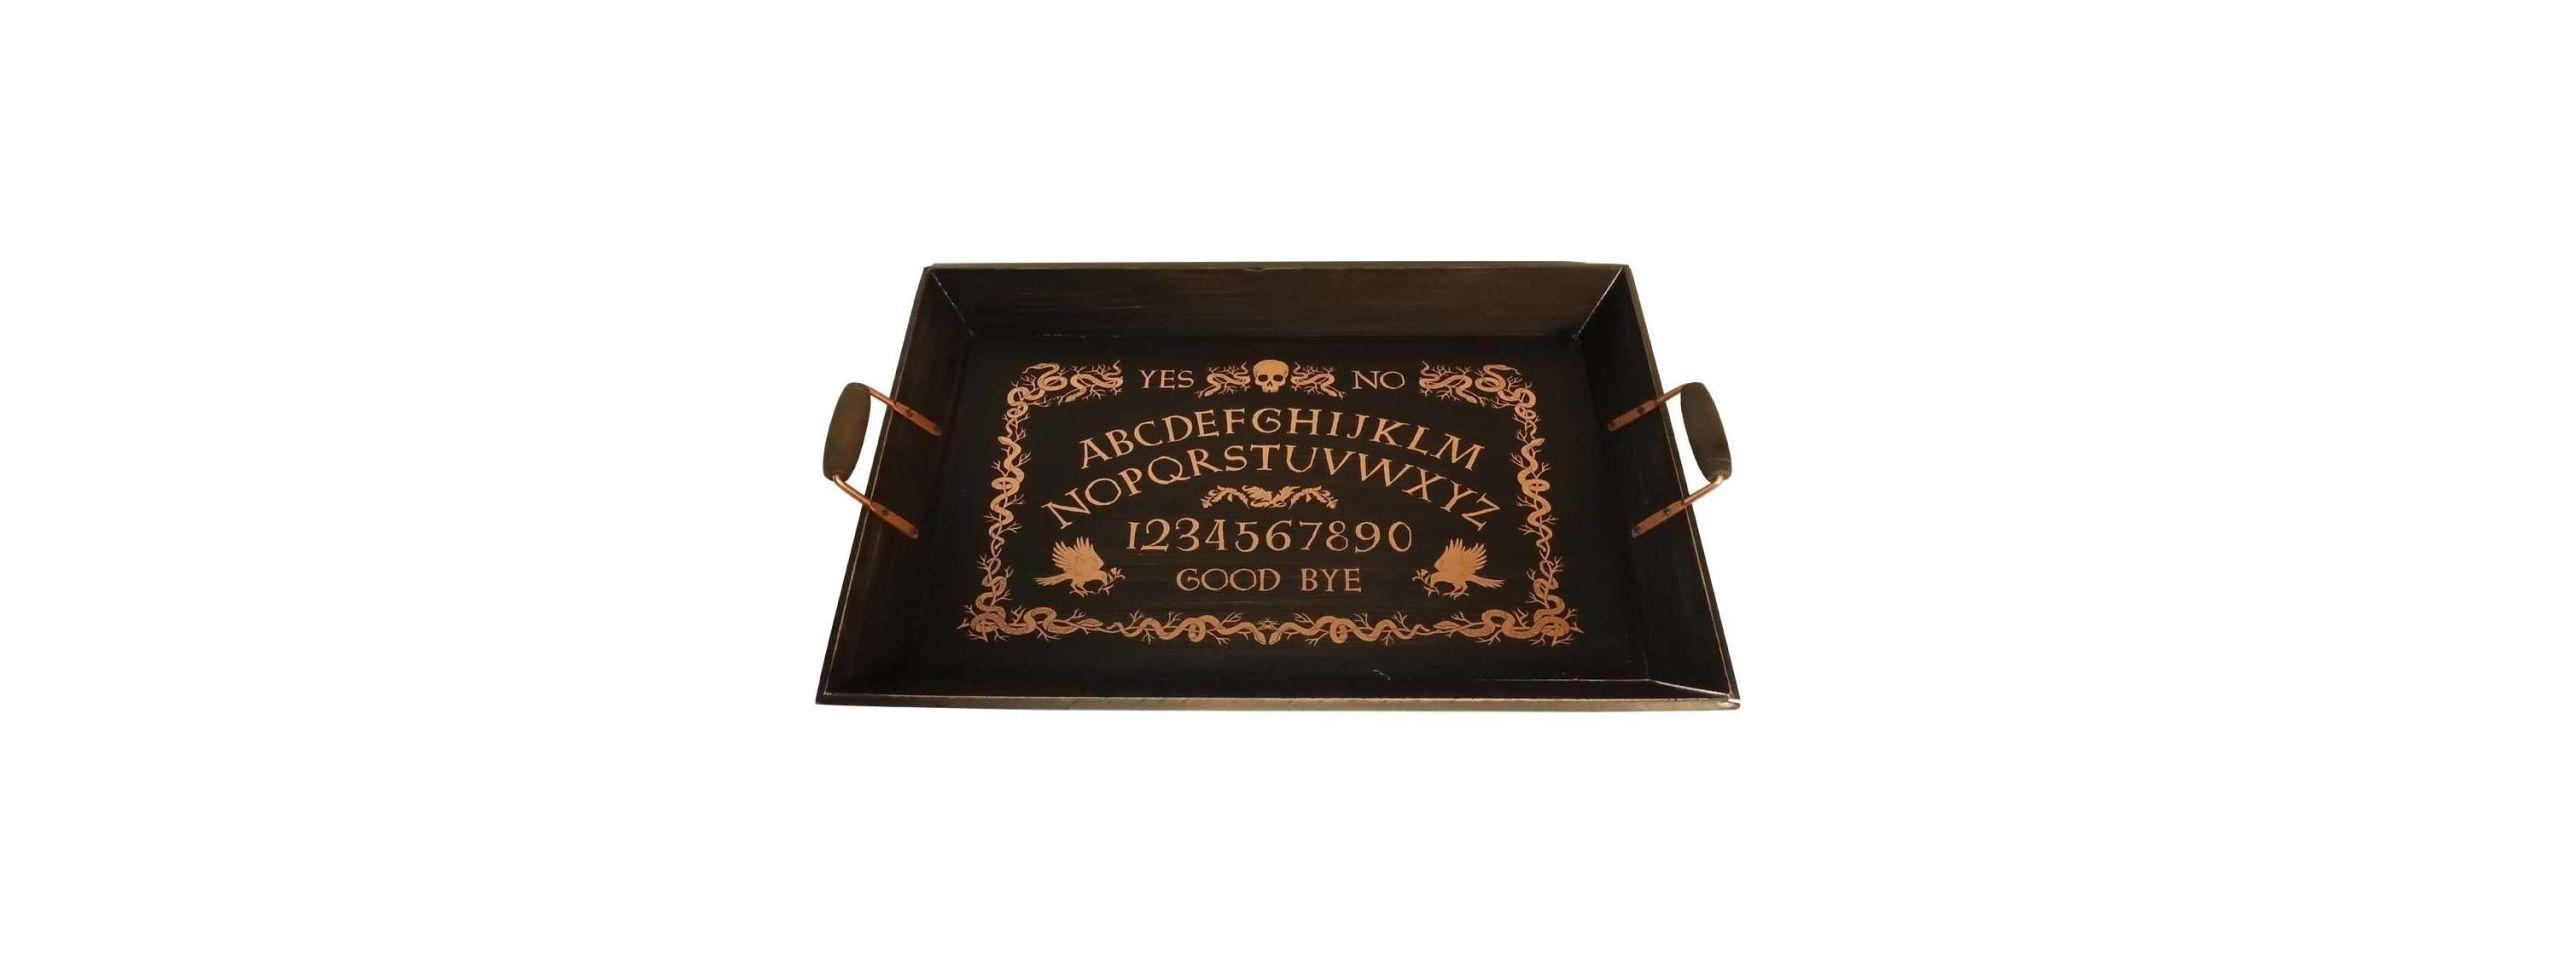 """<p>Nothing says Halloween like a <a href=""""http://www.delish.com/cooking/videos/a49630/how-to-make-ouija-board-cake-video/"""" rel=""""nofollow noopener"""" target=""""_blank"""" data-ylk=""""slk:Ouija"""" class=""""link rapid-noclick-resp"""">Ouija</a> board. This tray turns the game into a platter for all your <a href=""""http://www.delish.com/holiday-recipes/halloween/g1681/grown-up-halloween-party/"""" rel=""""nofollow noopener"""" target=""""_blank"""" data-ylk=""""slk:decorative eats"""" class=""""link rapid-noclick-resp"""">decorative eats</a>.</p><p><strong>Price</strong>: $20</p><p><a href=""""https://www.target.com/p/halloween-spirit-board-serving-tray-hyde-and-eek-boutique-153/-/A-52354273#lnk=newtab"""" rel=""""nofollow noopener"""" target=""""_blank"""" data-ylk=""""slk:Get it here."""" class=""""link rapid-noclick-resp"""">Get it here.</a></p>"""